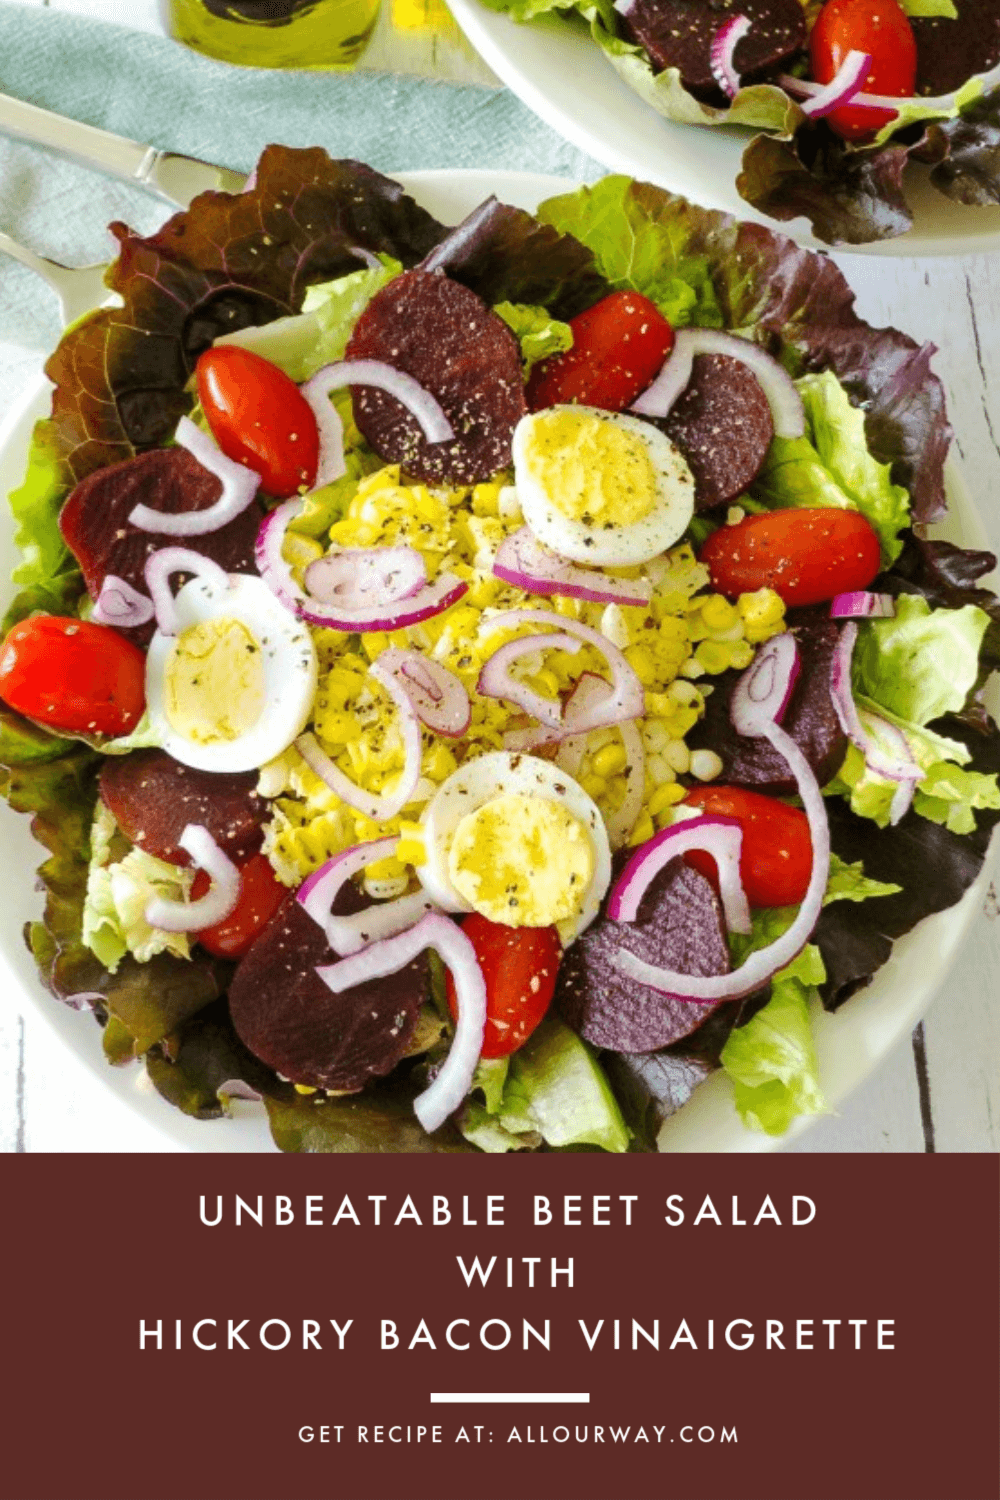 A salad that not only tastes good but is packed with nutrition. Beets are almost a magical vegetable that brings so much goodness to our bodies. The vinaigrette we selected compliments the earthy taste of the salad. It's a family favorite. #salad, #summersalad, #beetsalad, #dietsalad, #healthysalad, #nutritioussalad, #completesalad, #dinnersalad, #healthysalad, #lunchsalad, #baconvinaigrette, #lightvinaigrettedressing